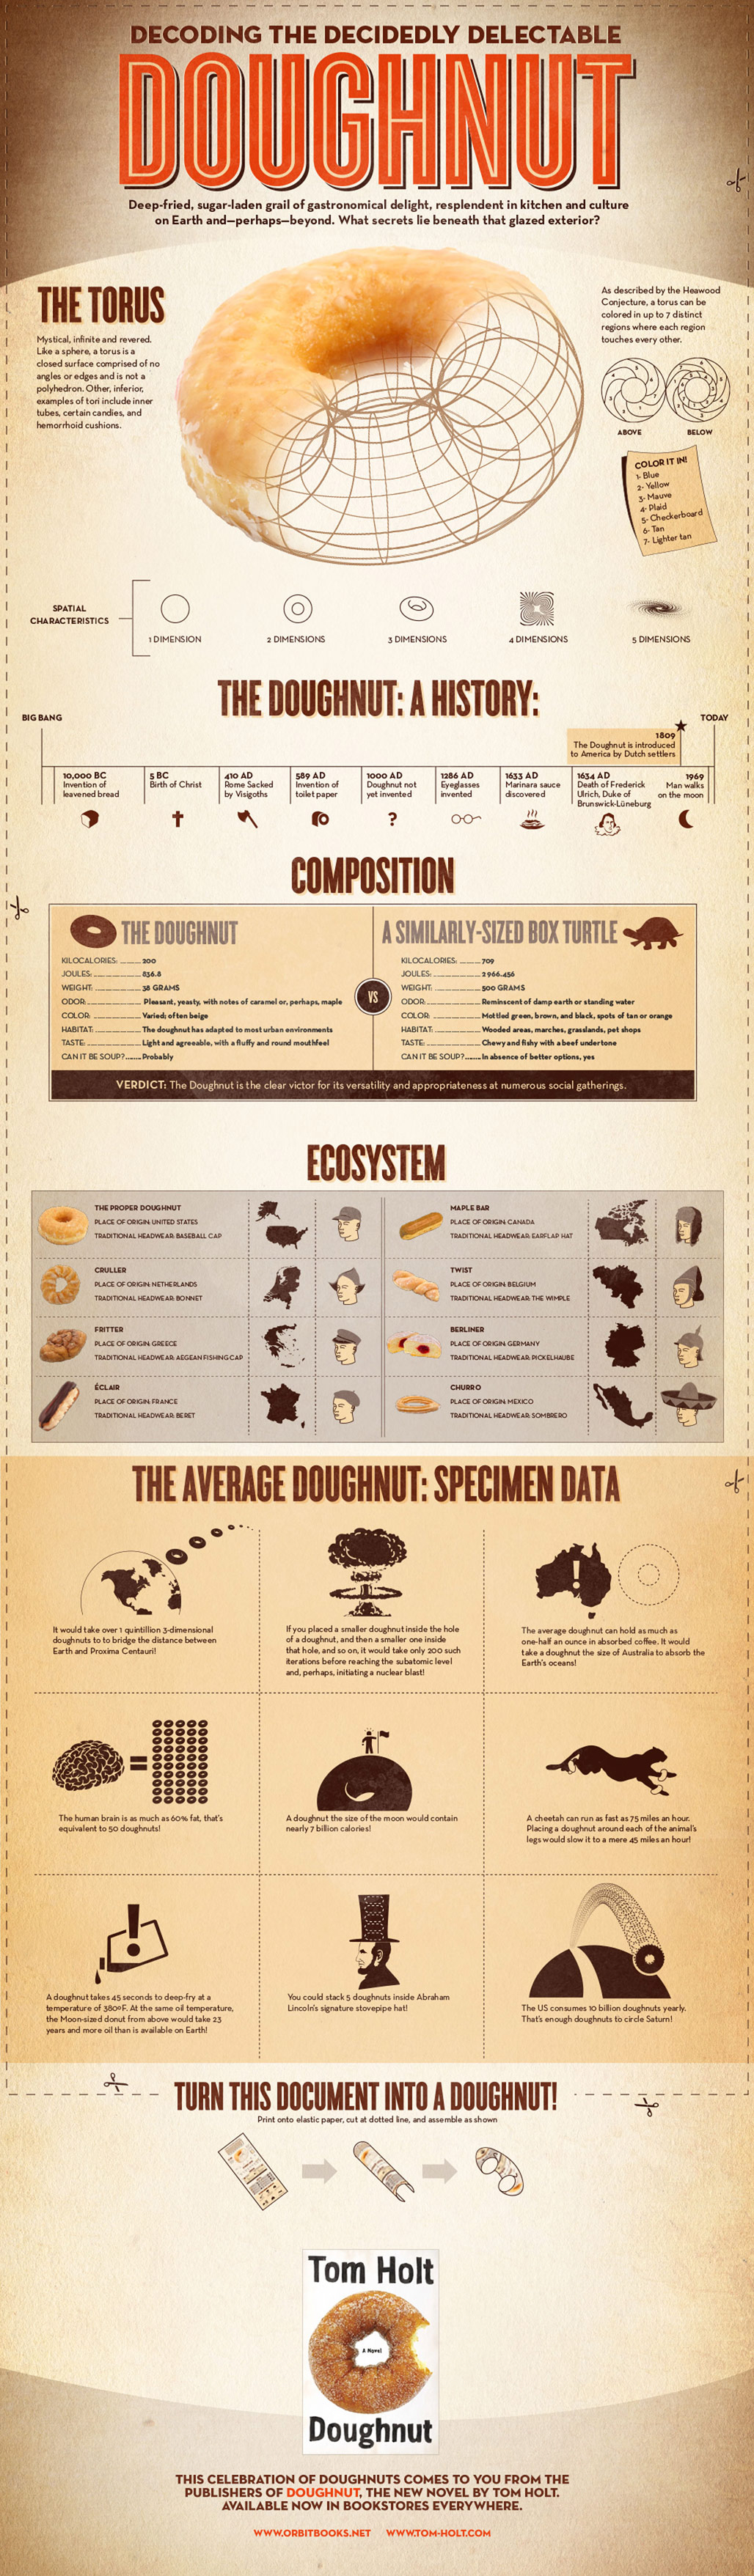 Dougnut Infographic - Click to enlarge!